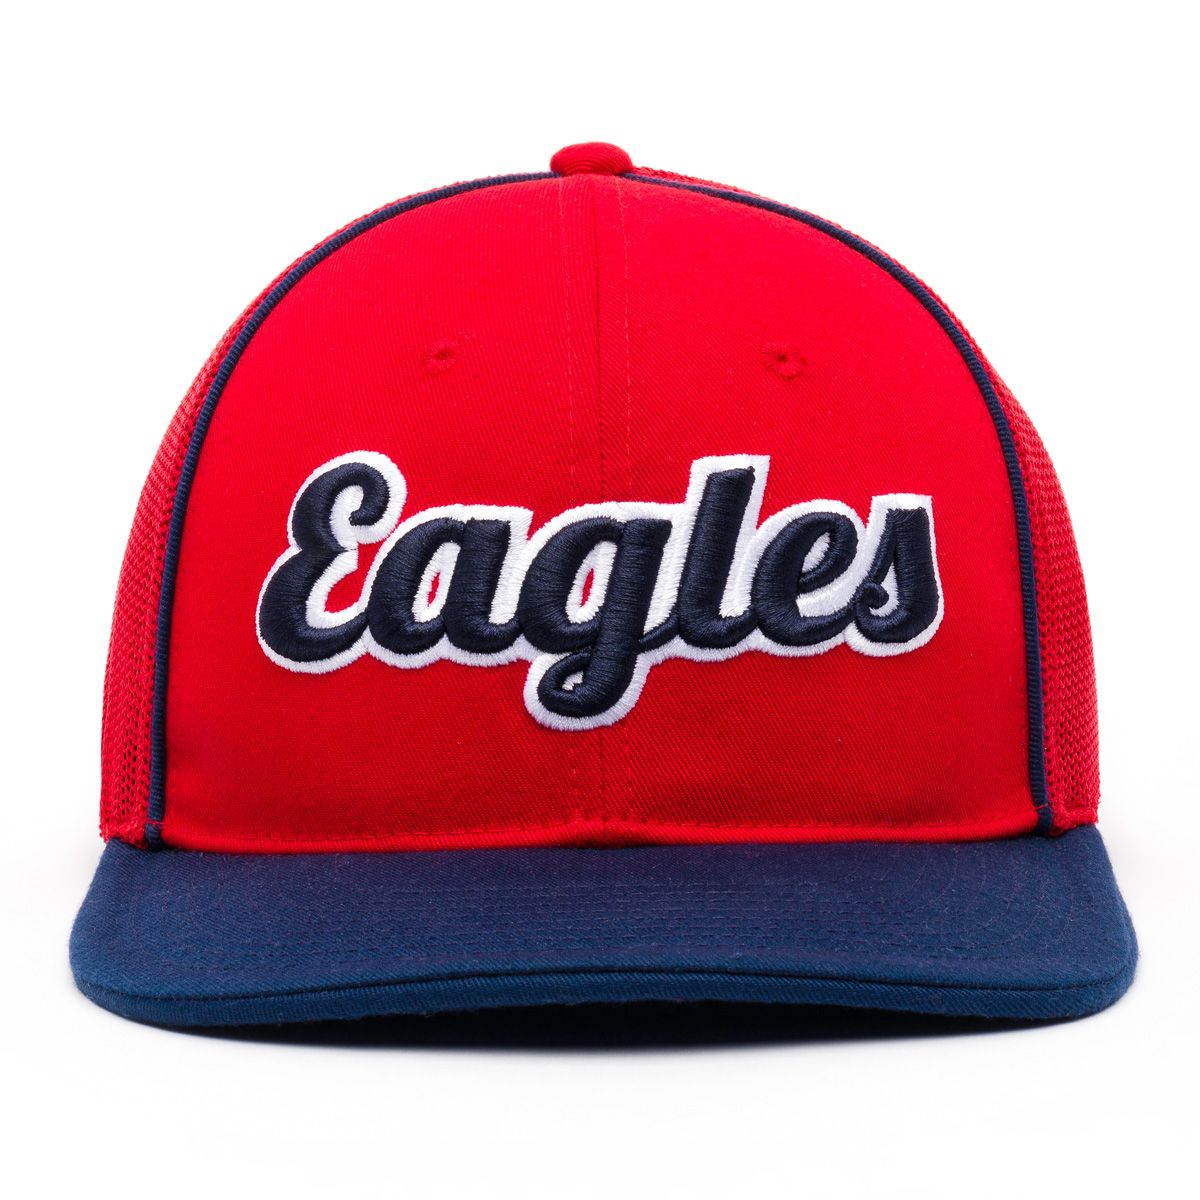 2383220fdba9f custom embroidered hat eagles design